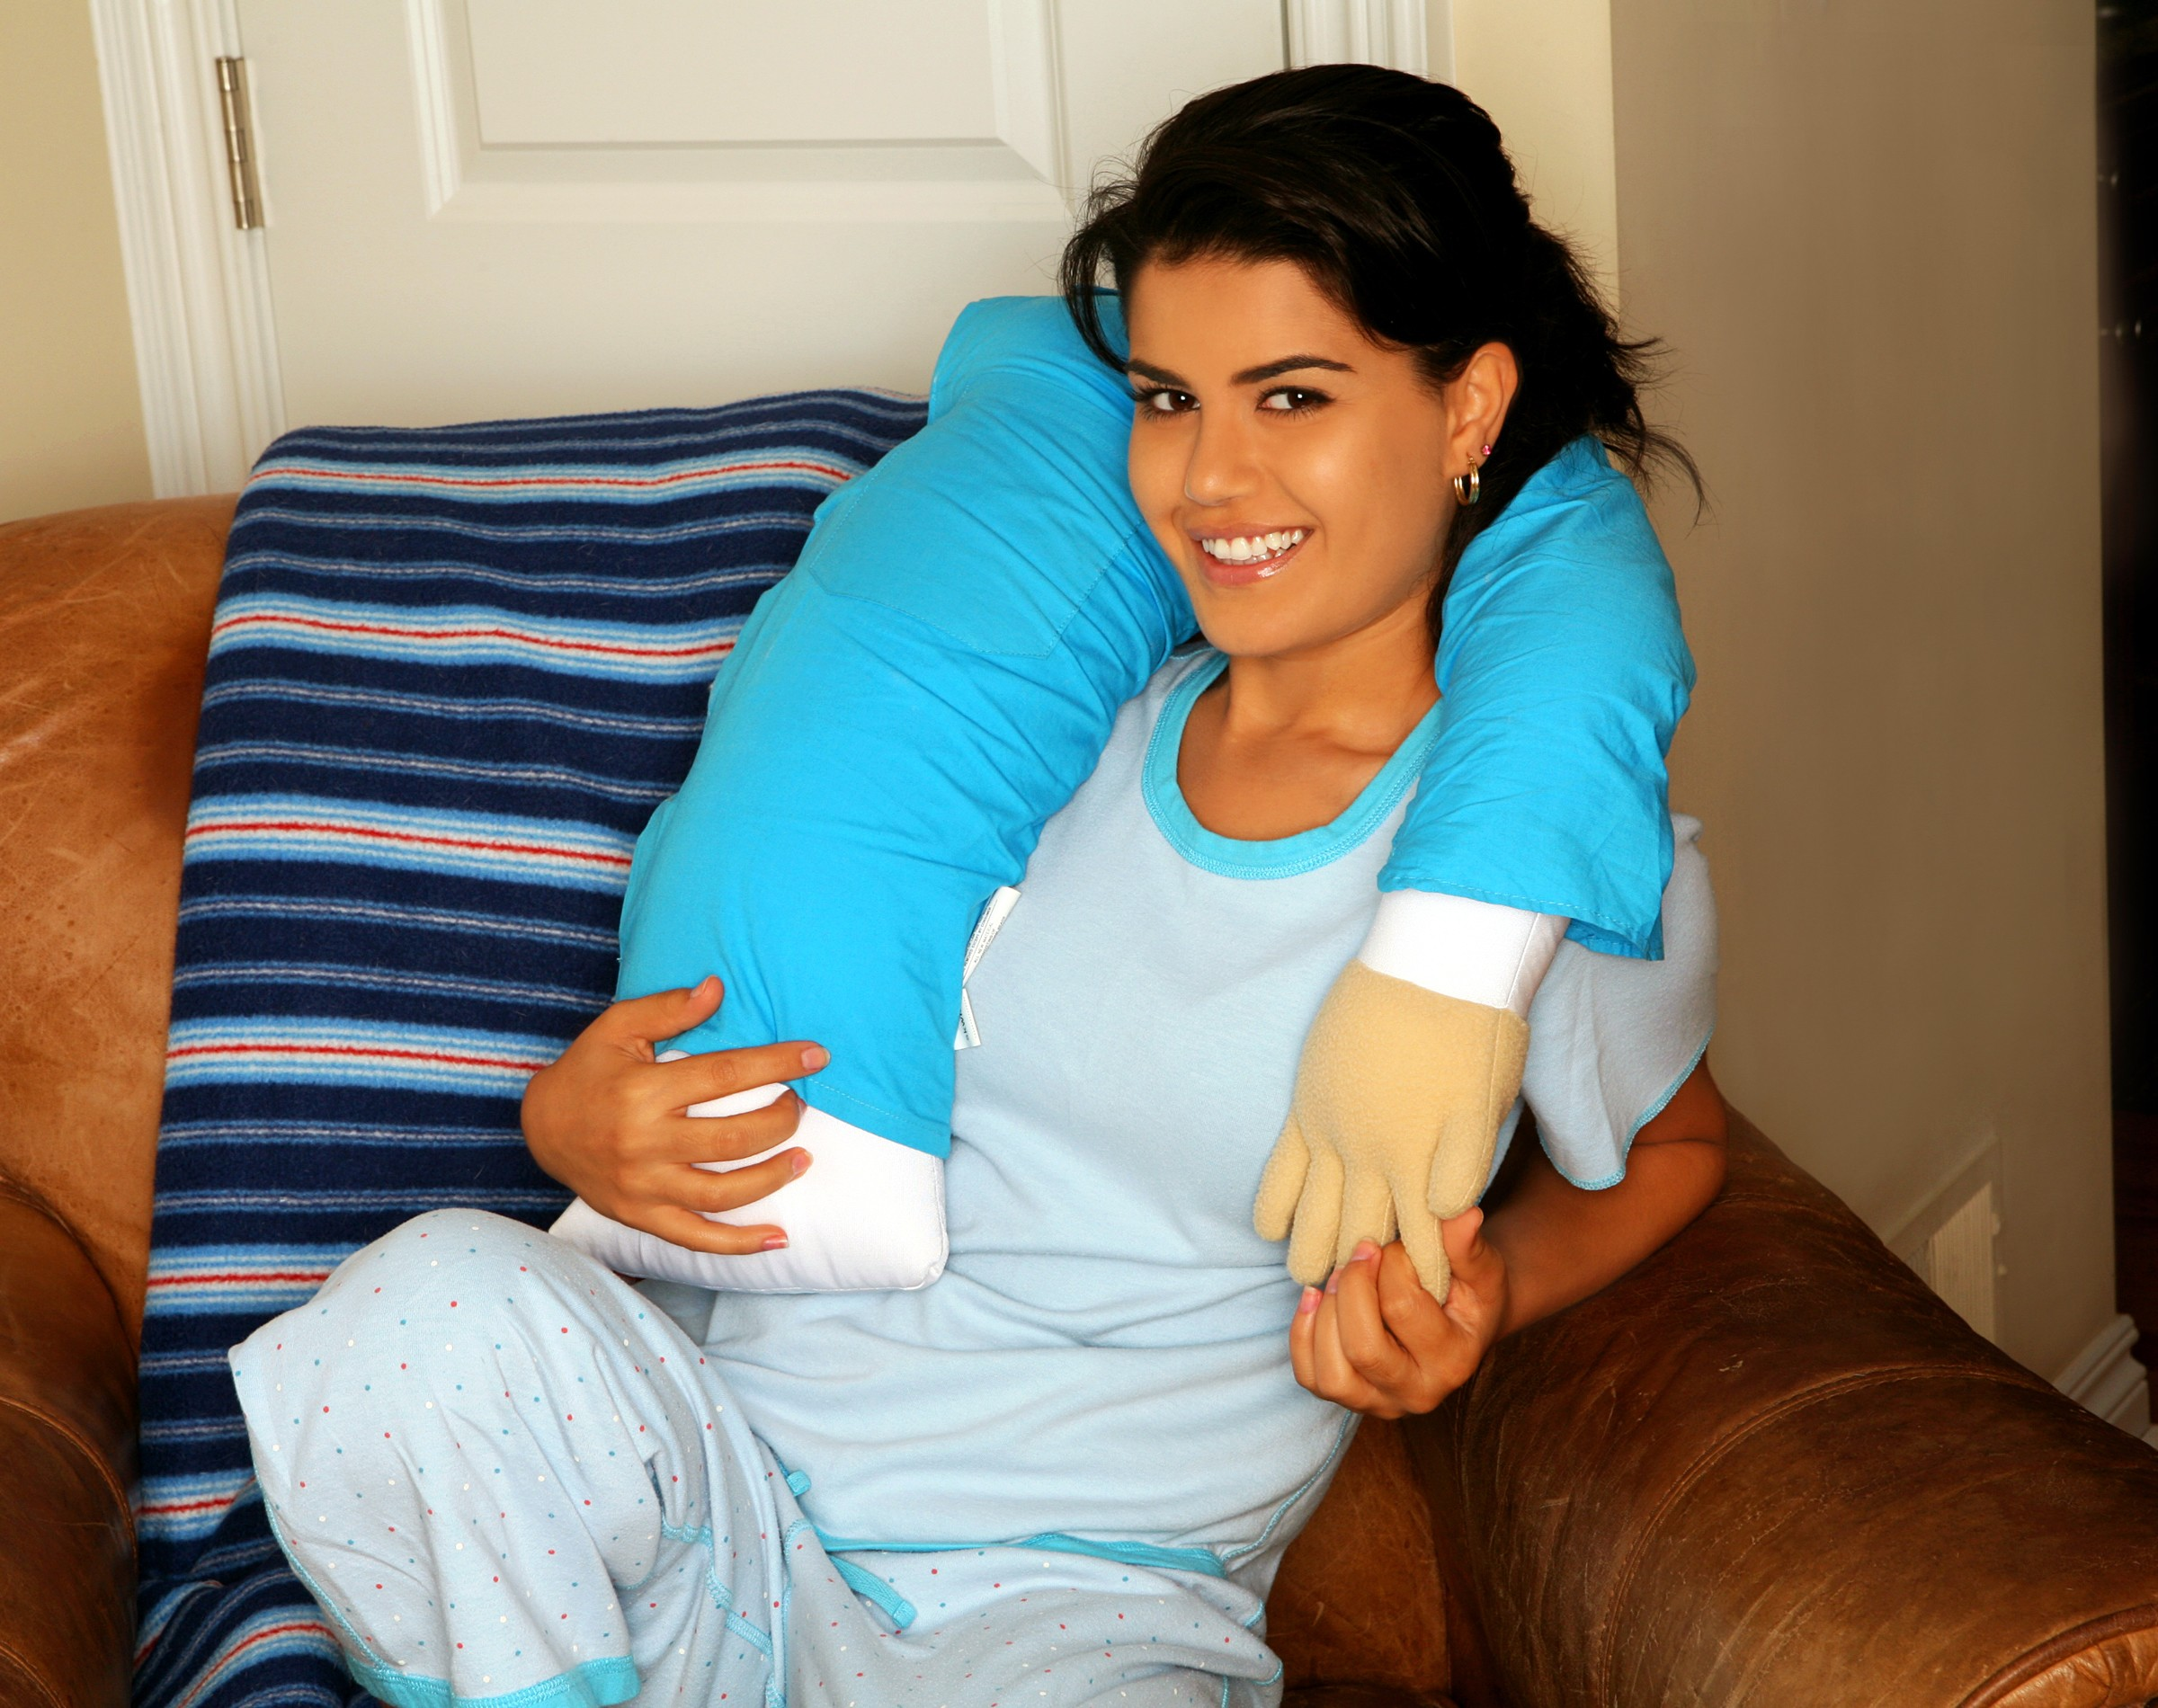 boyfriend pillow microbead companion pillow cute and fun husband companion or cuddle buddy super soft body pillow with benifits unique gag gift